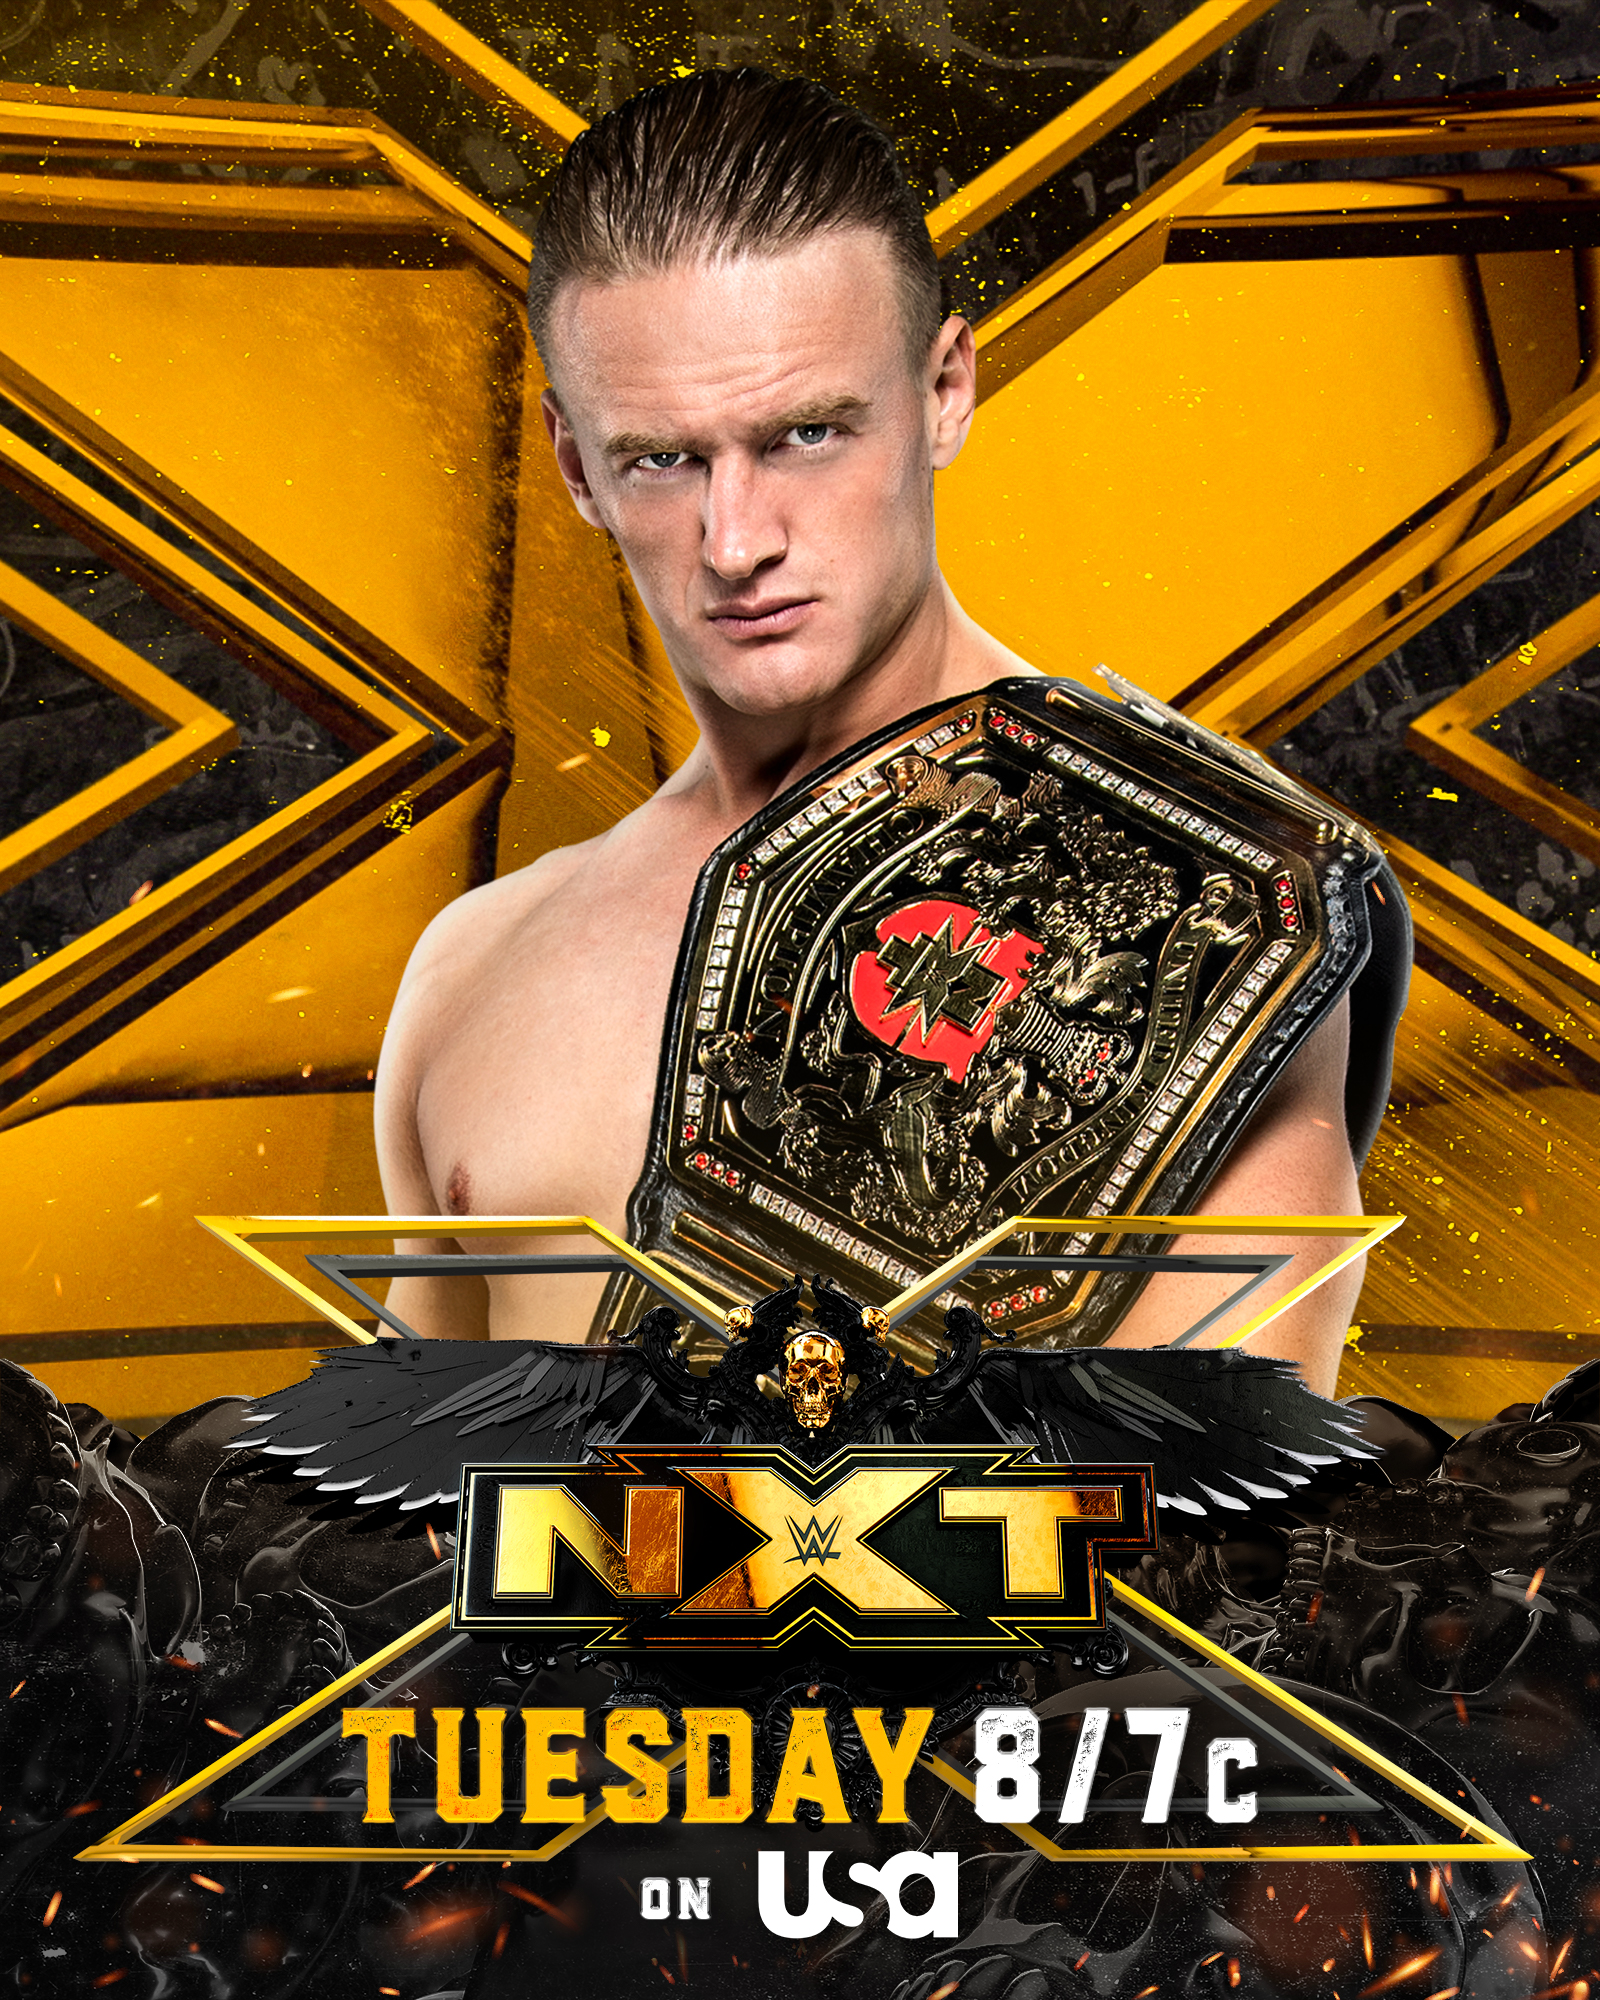 NXT Preview for 8/31/21